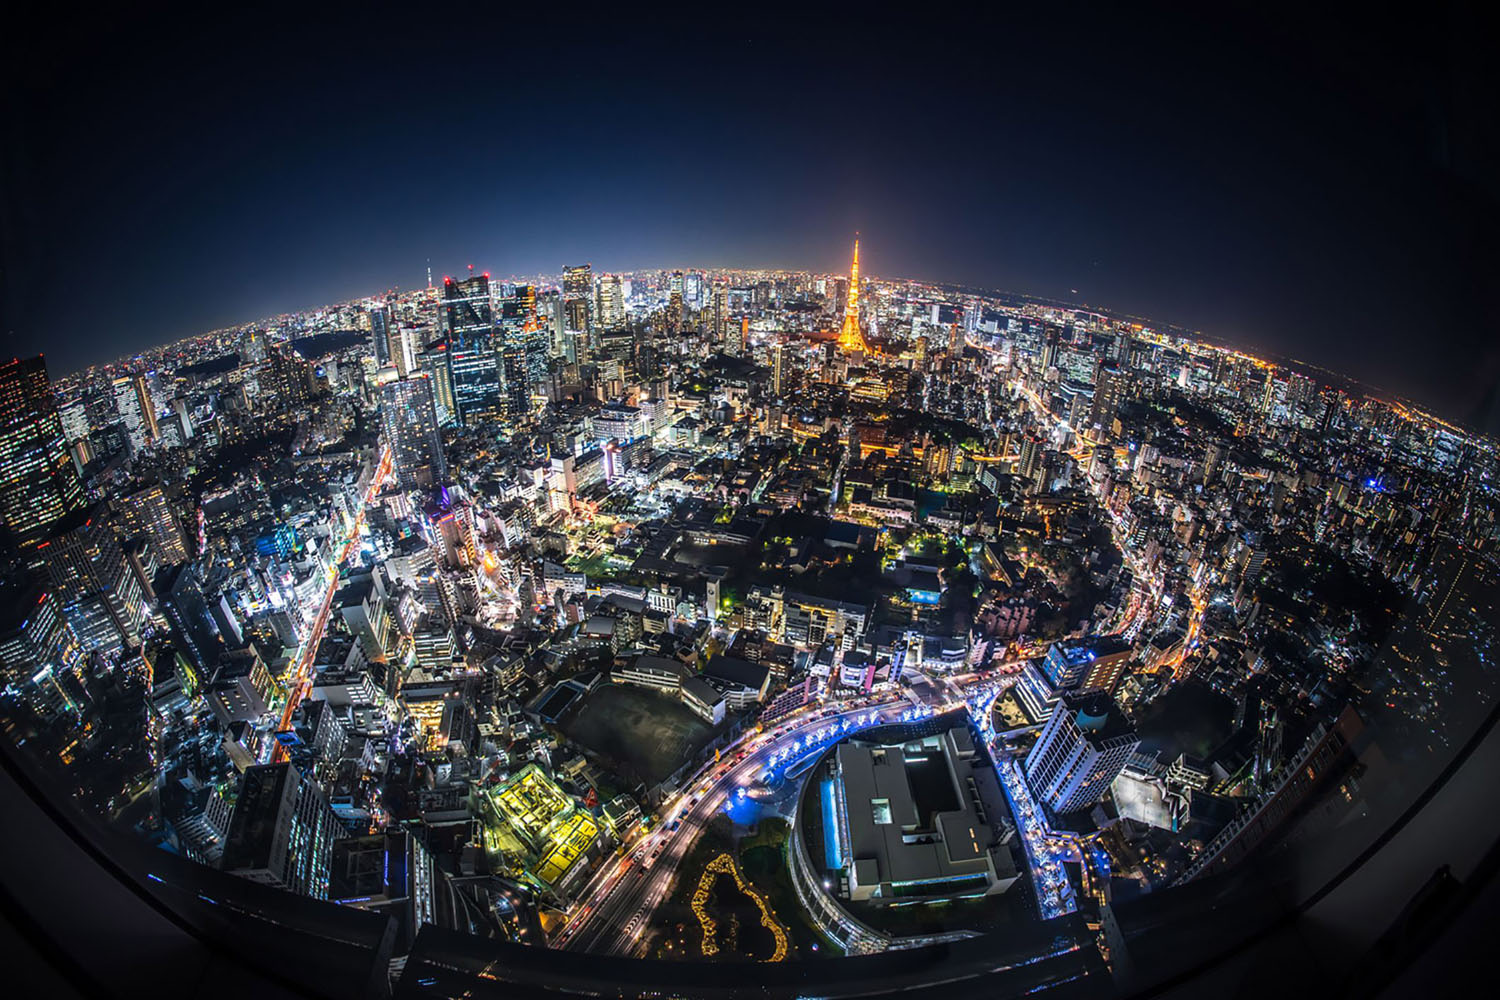 An aerial view of Tokyo, Japan at night.